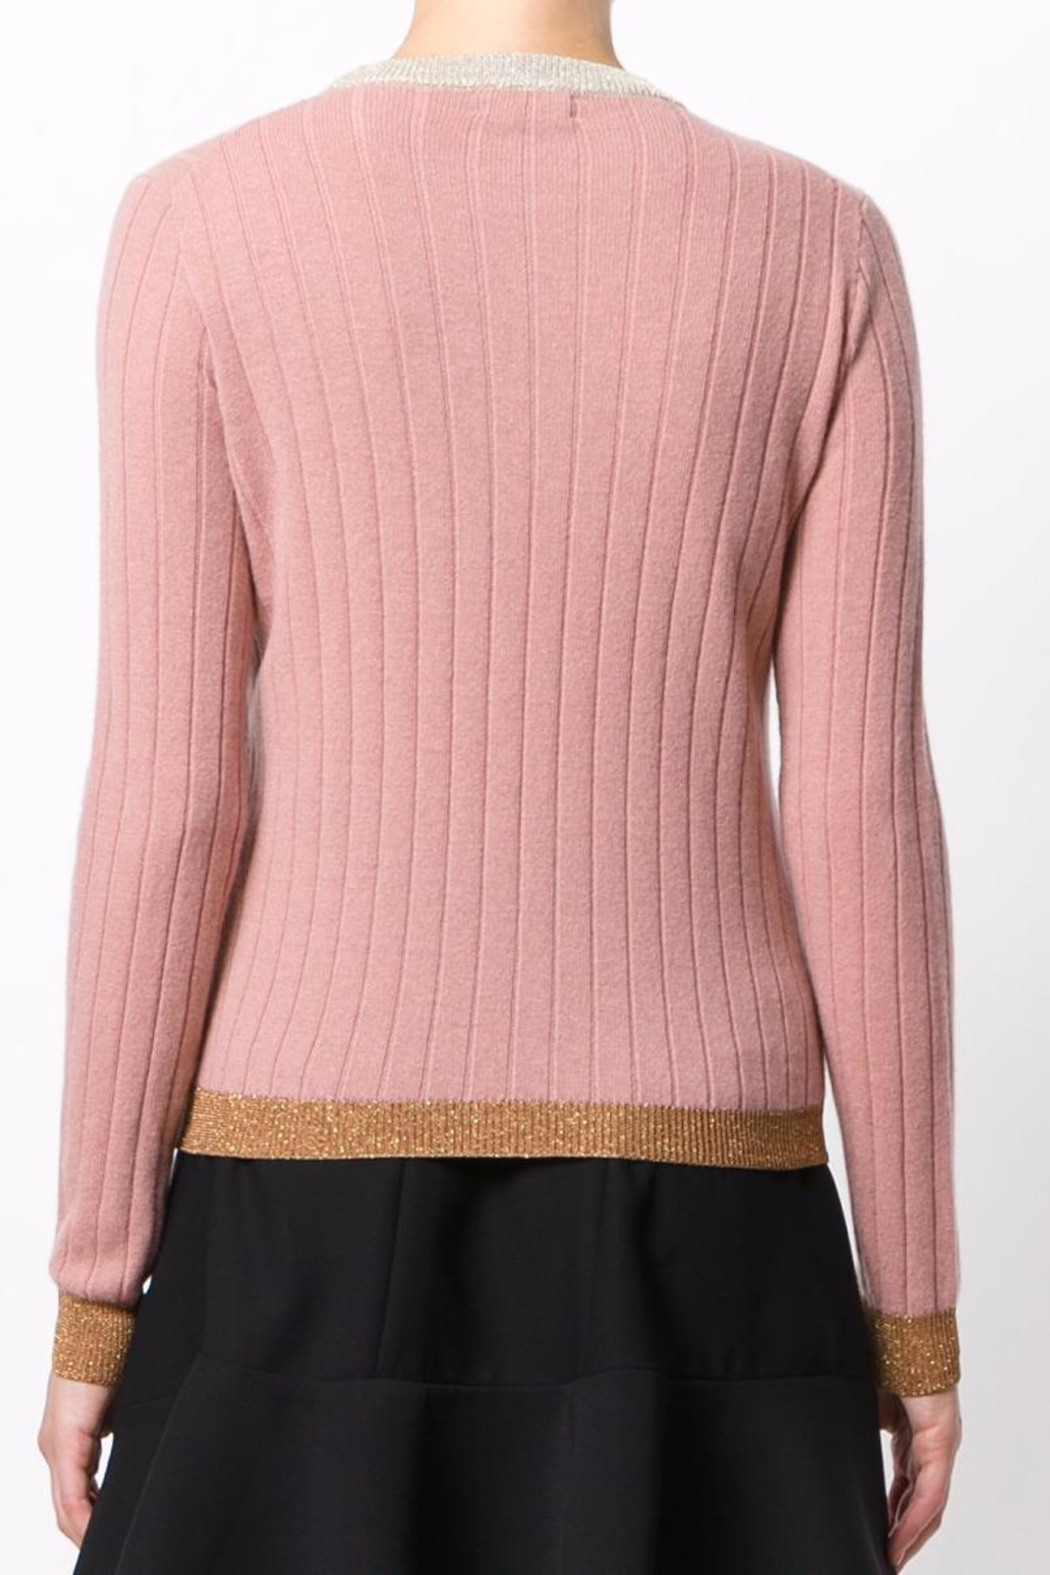 Roberto Collina Rose Ribbed Sweater - Front Full Image